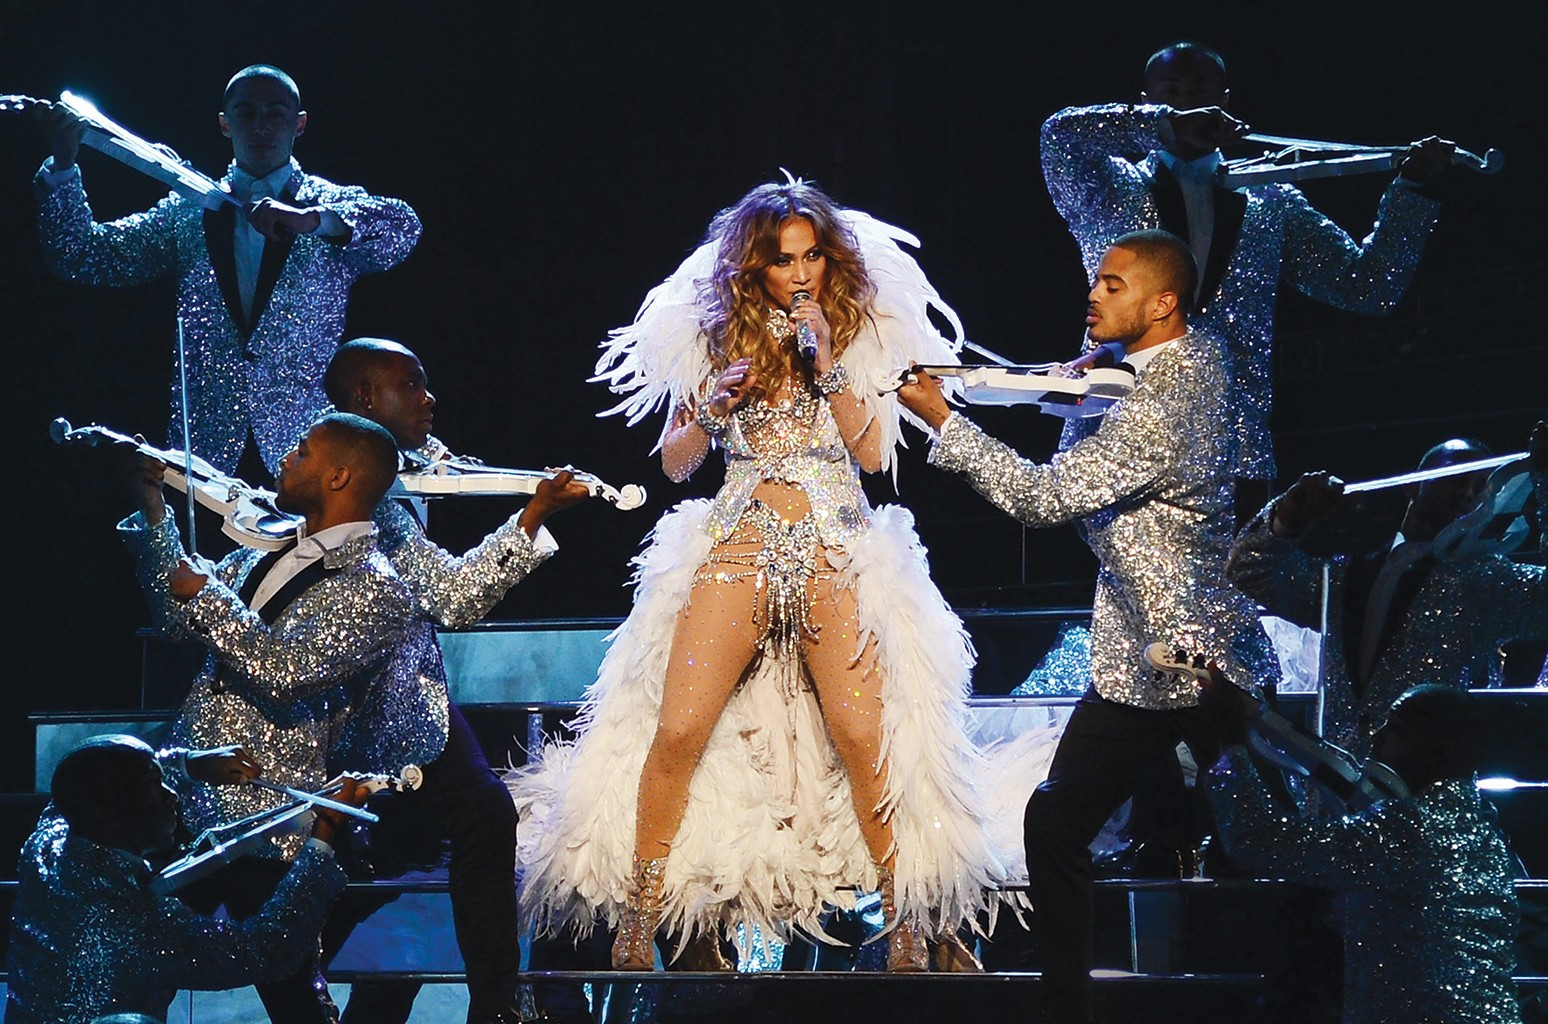 Jennifer Lopez performs during the debut of her residency show JENNIFER LOPEZ: ALL I HAVE at Planet Hollywood Resort & Casino on Jan. 20, 2016 in Las Vegas.